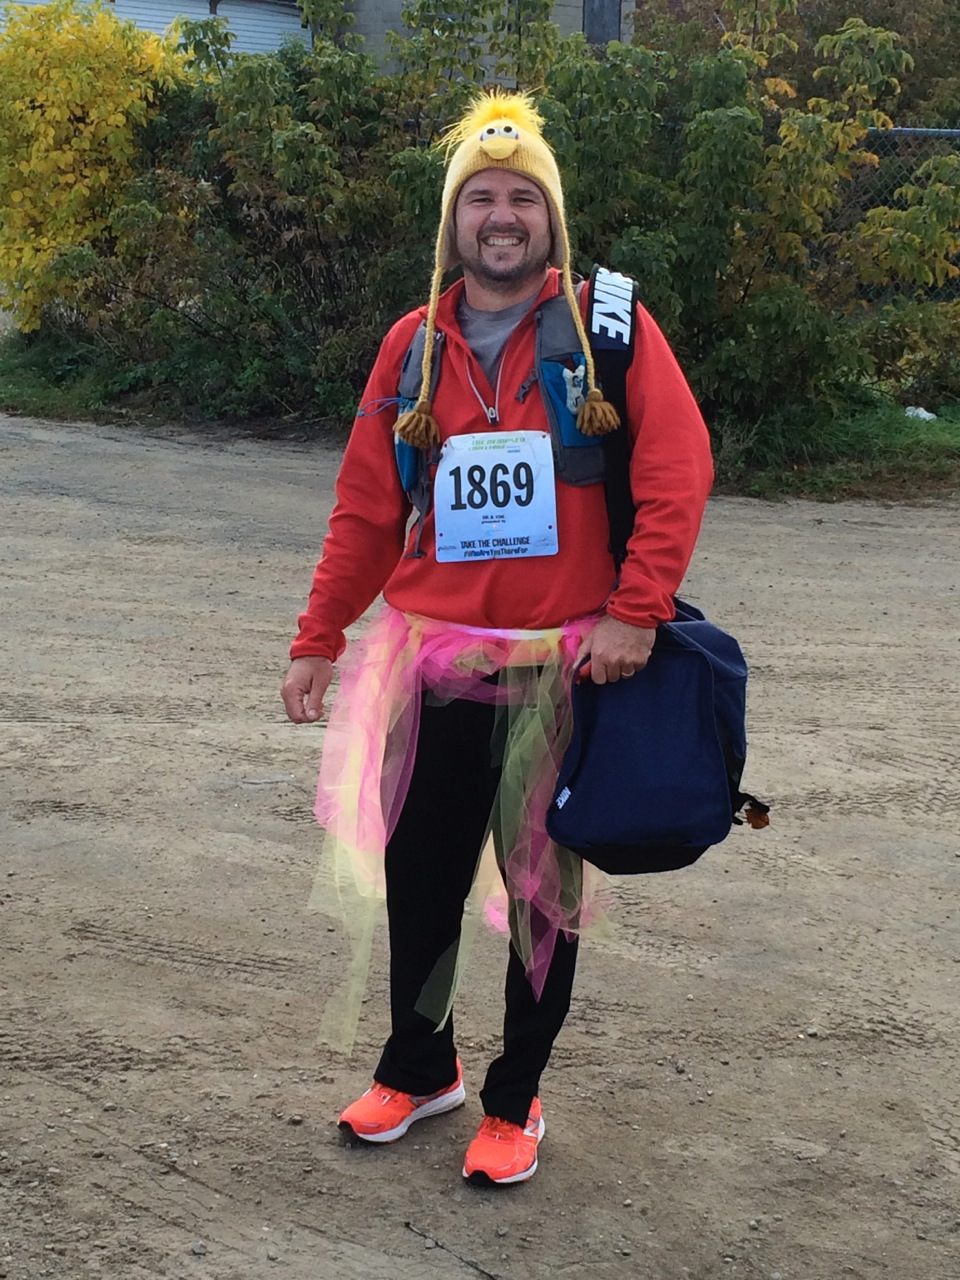 Michael Cushing sporting a colored tutu at the event.